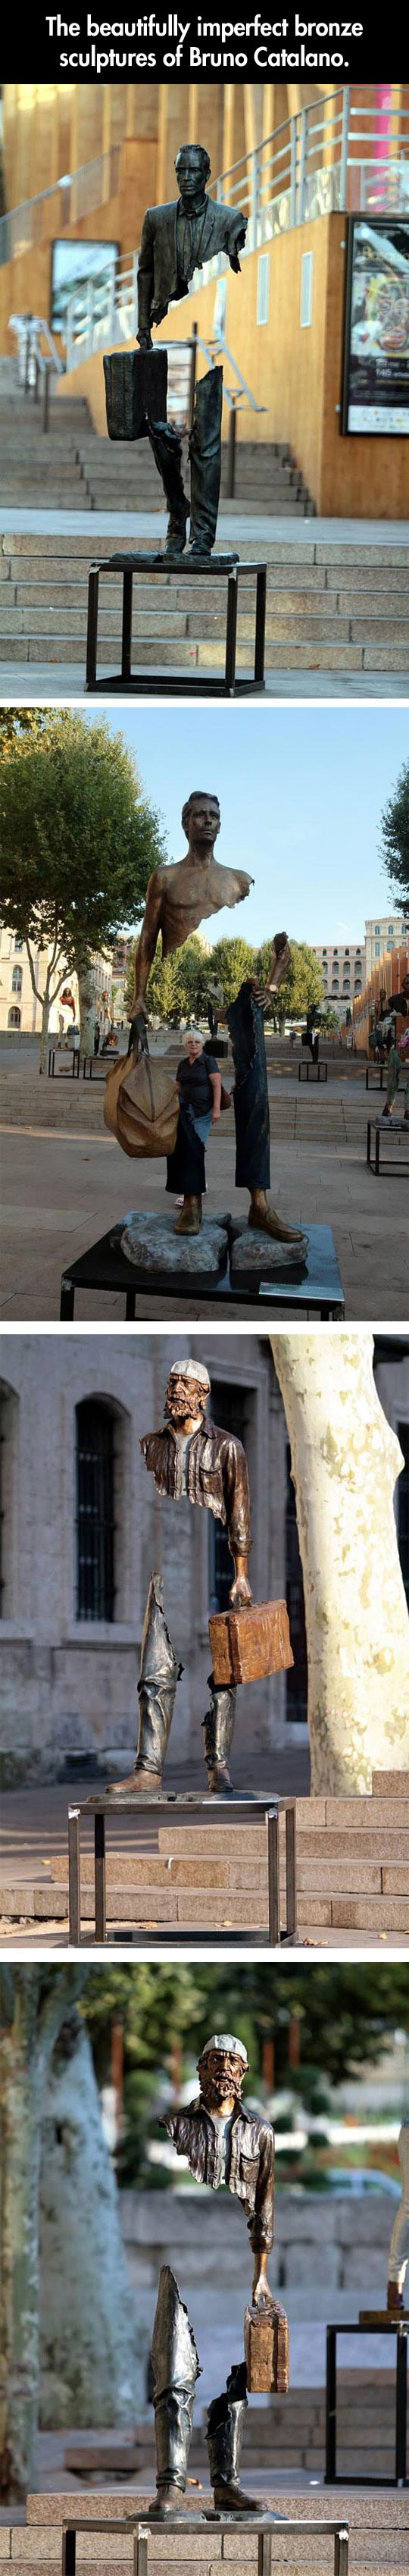 Beautifully imperfect sculptures...